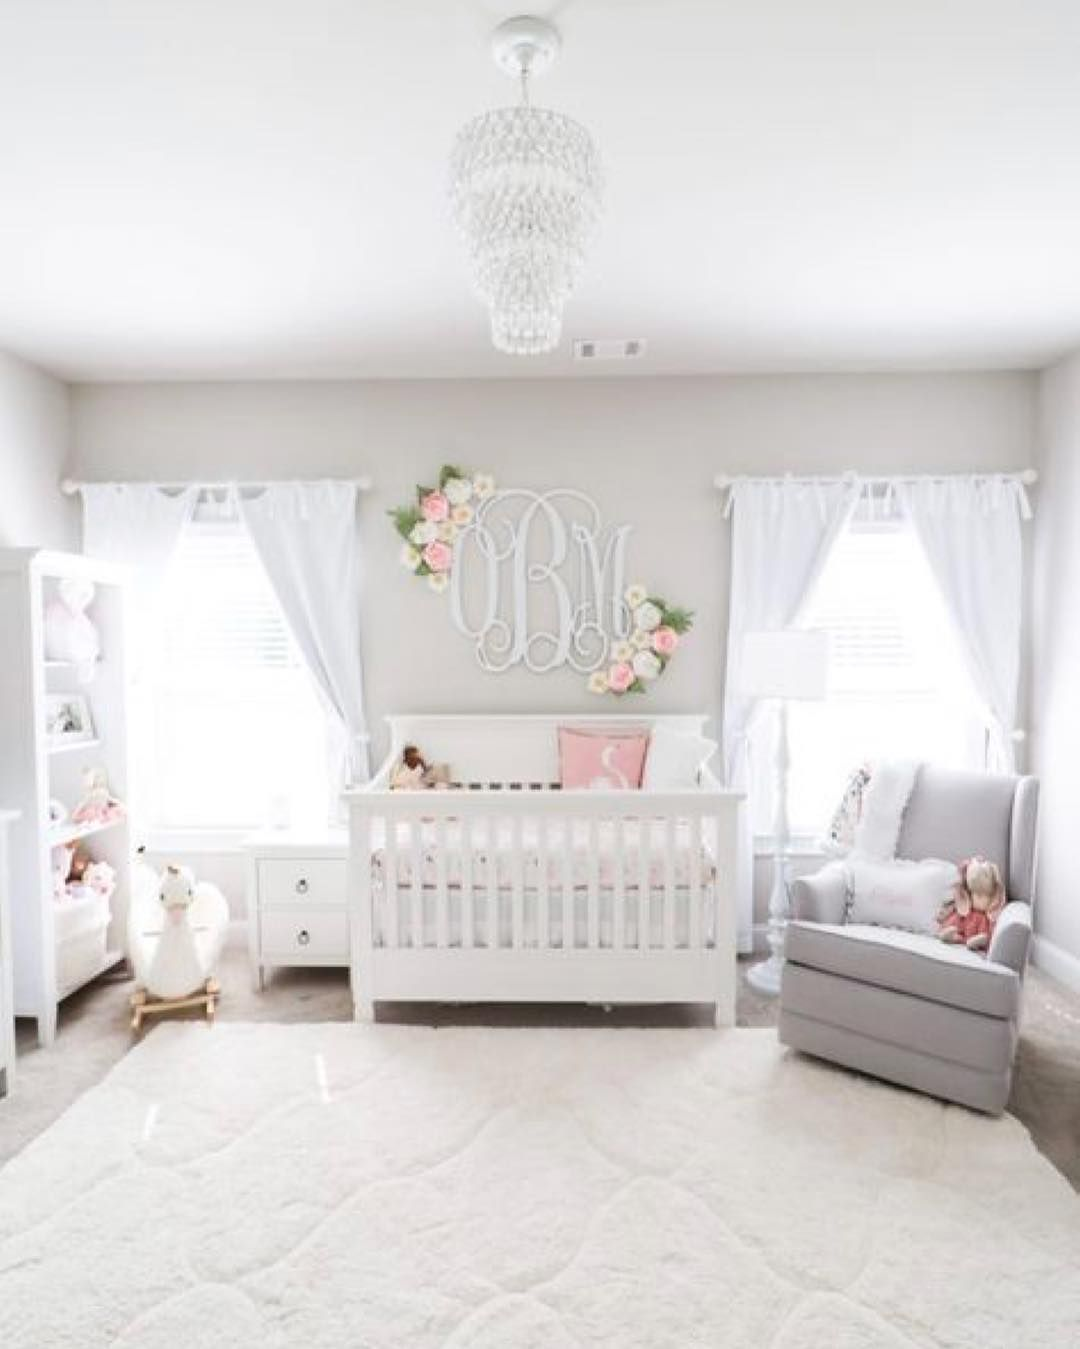 New Babyroom Decoration Ideas For